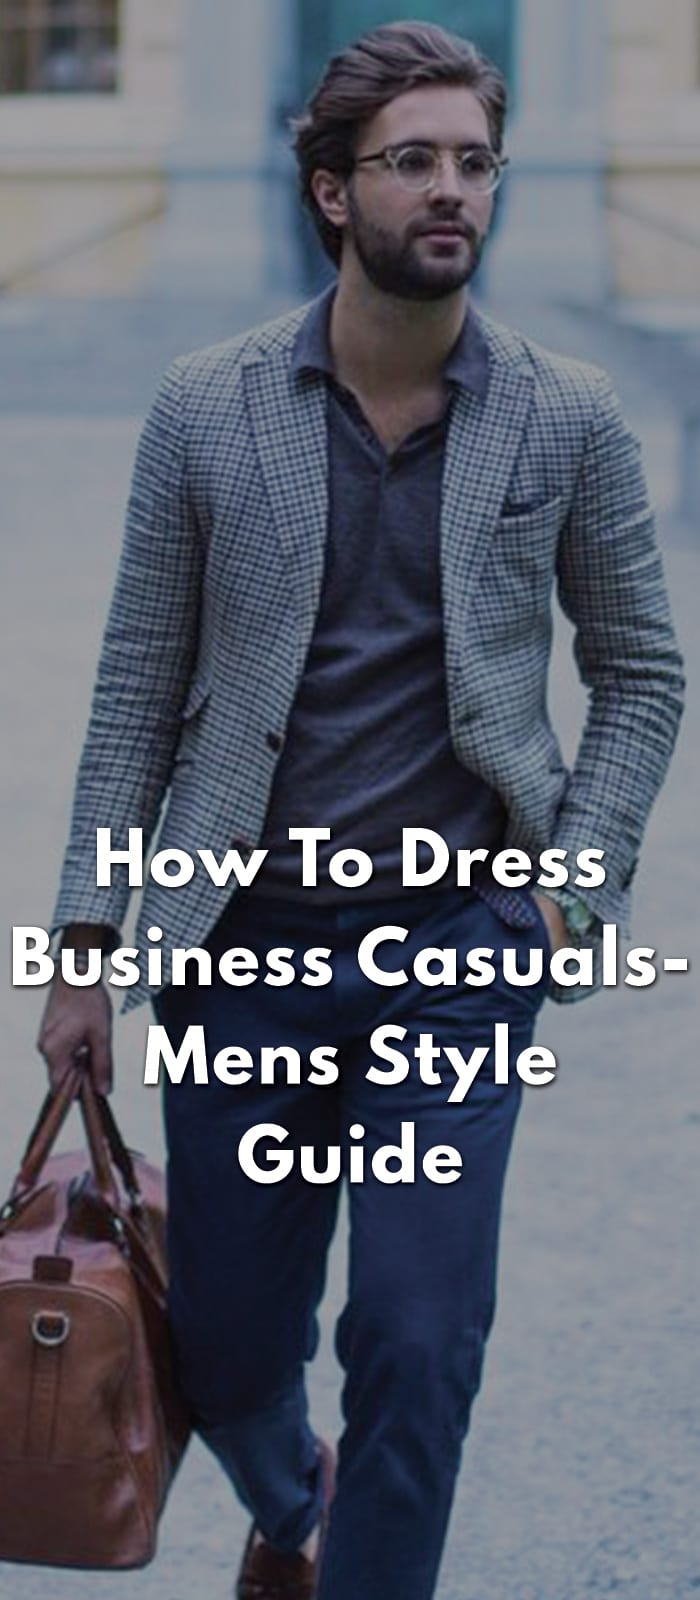 How-To-Dress-Business-Casuals--Mens-Style-GUide